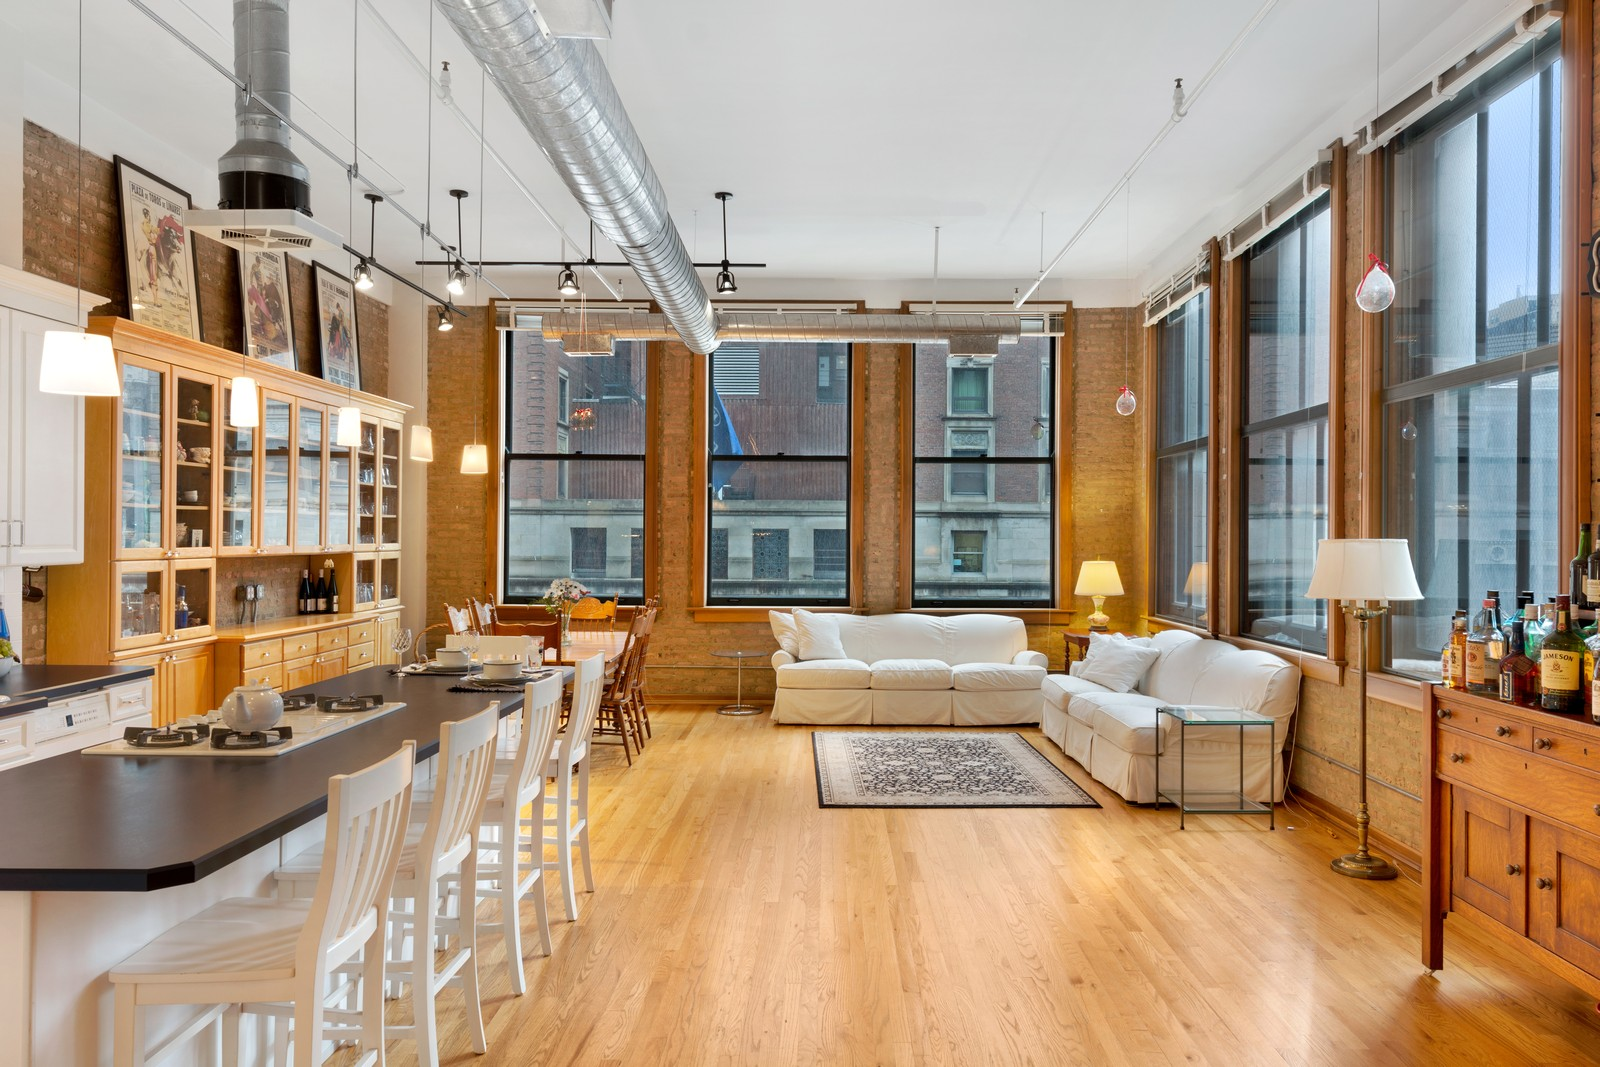 A living room with wood floors, high ceilings, and brick walls lined with windows. There is a pair of sofas and a kitchen with a breakfast bar island under pendant lights.